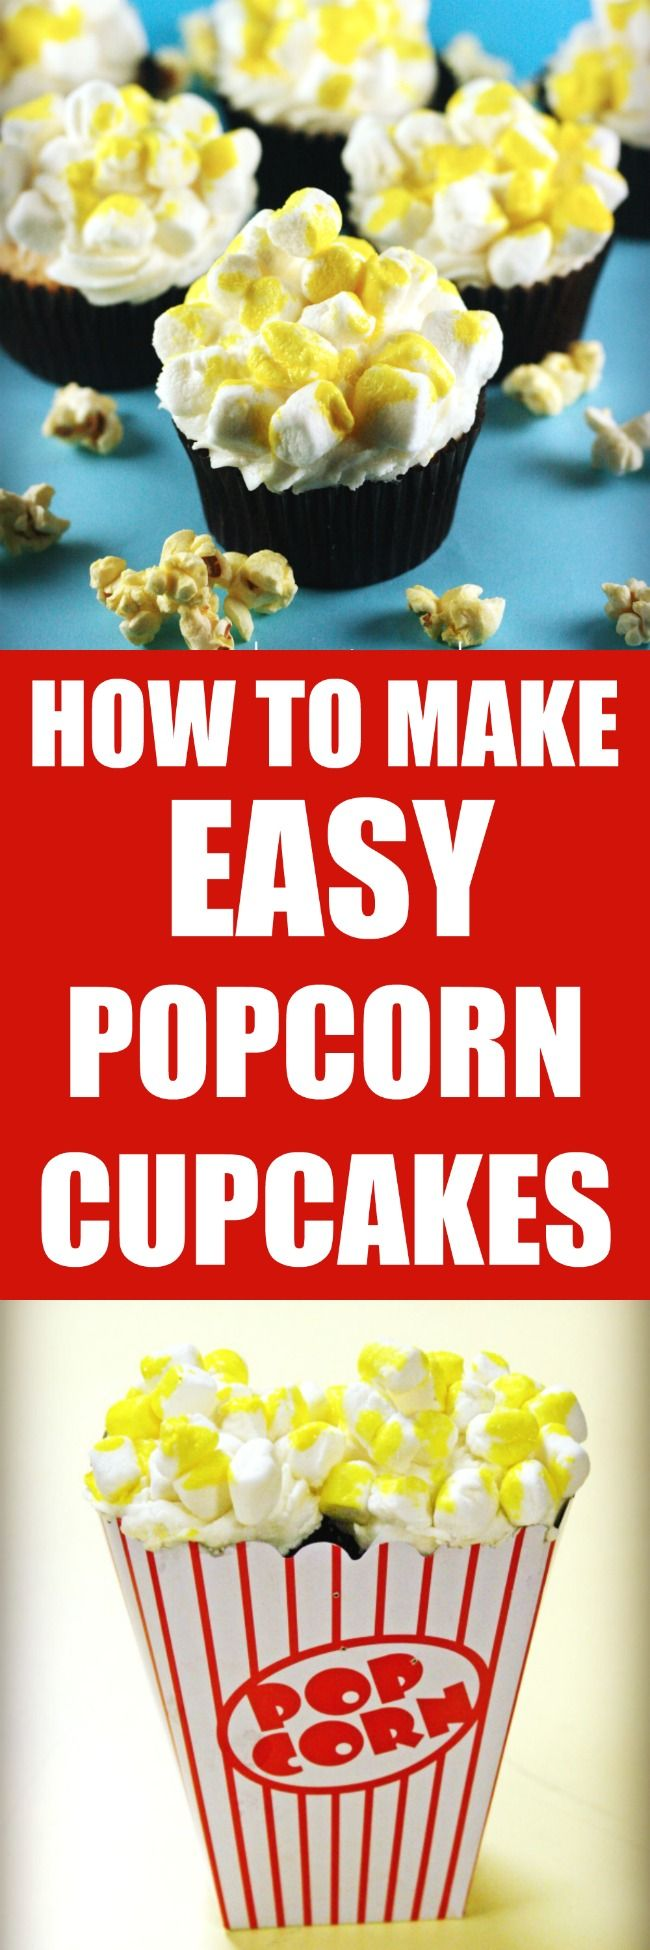 HOW TO MAKE EASY POPCORN CUPCAKES BY ROSEBAKES